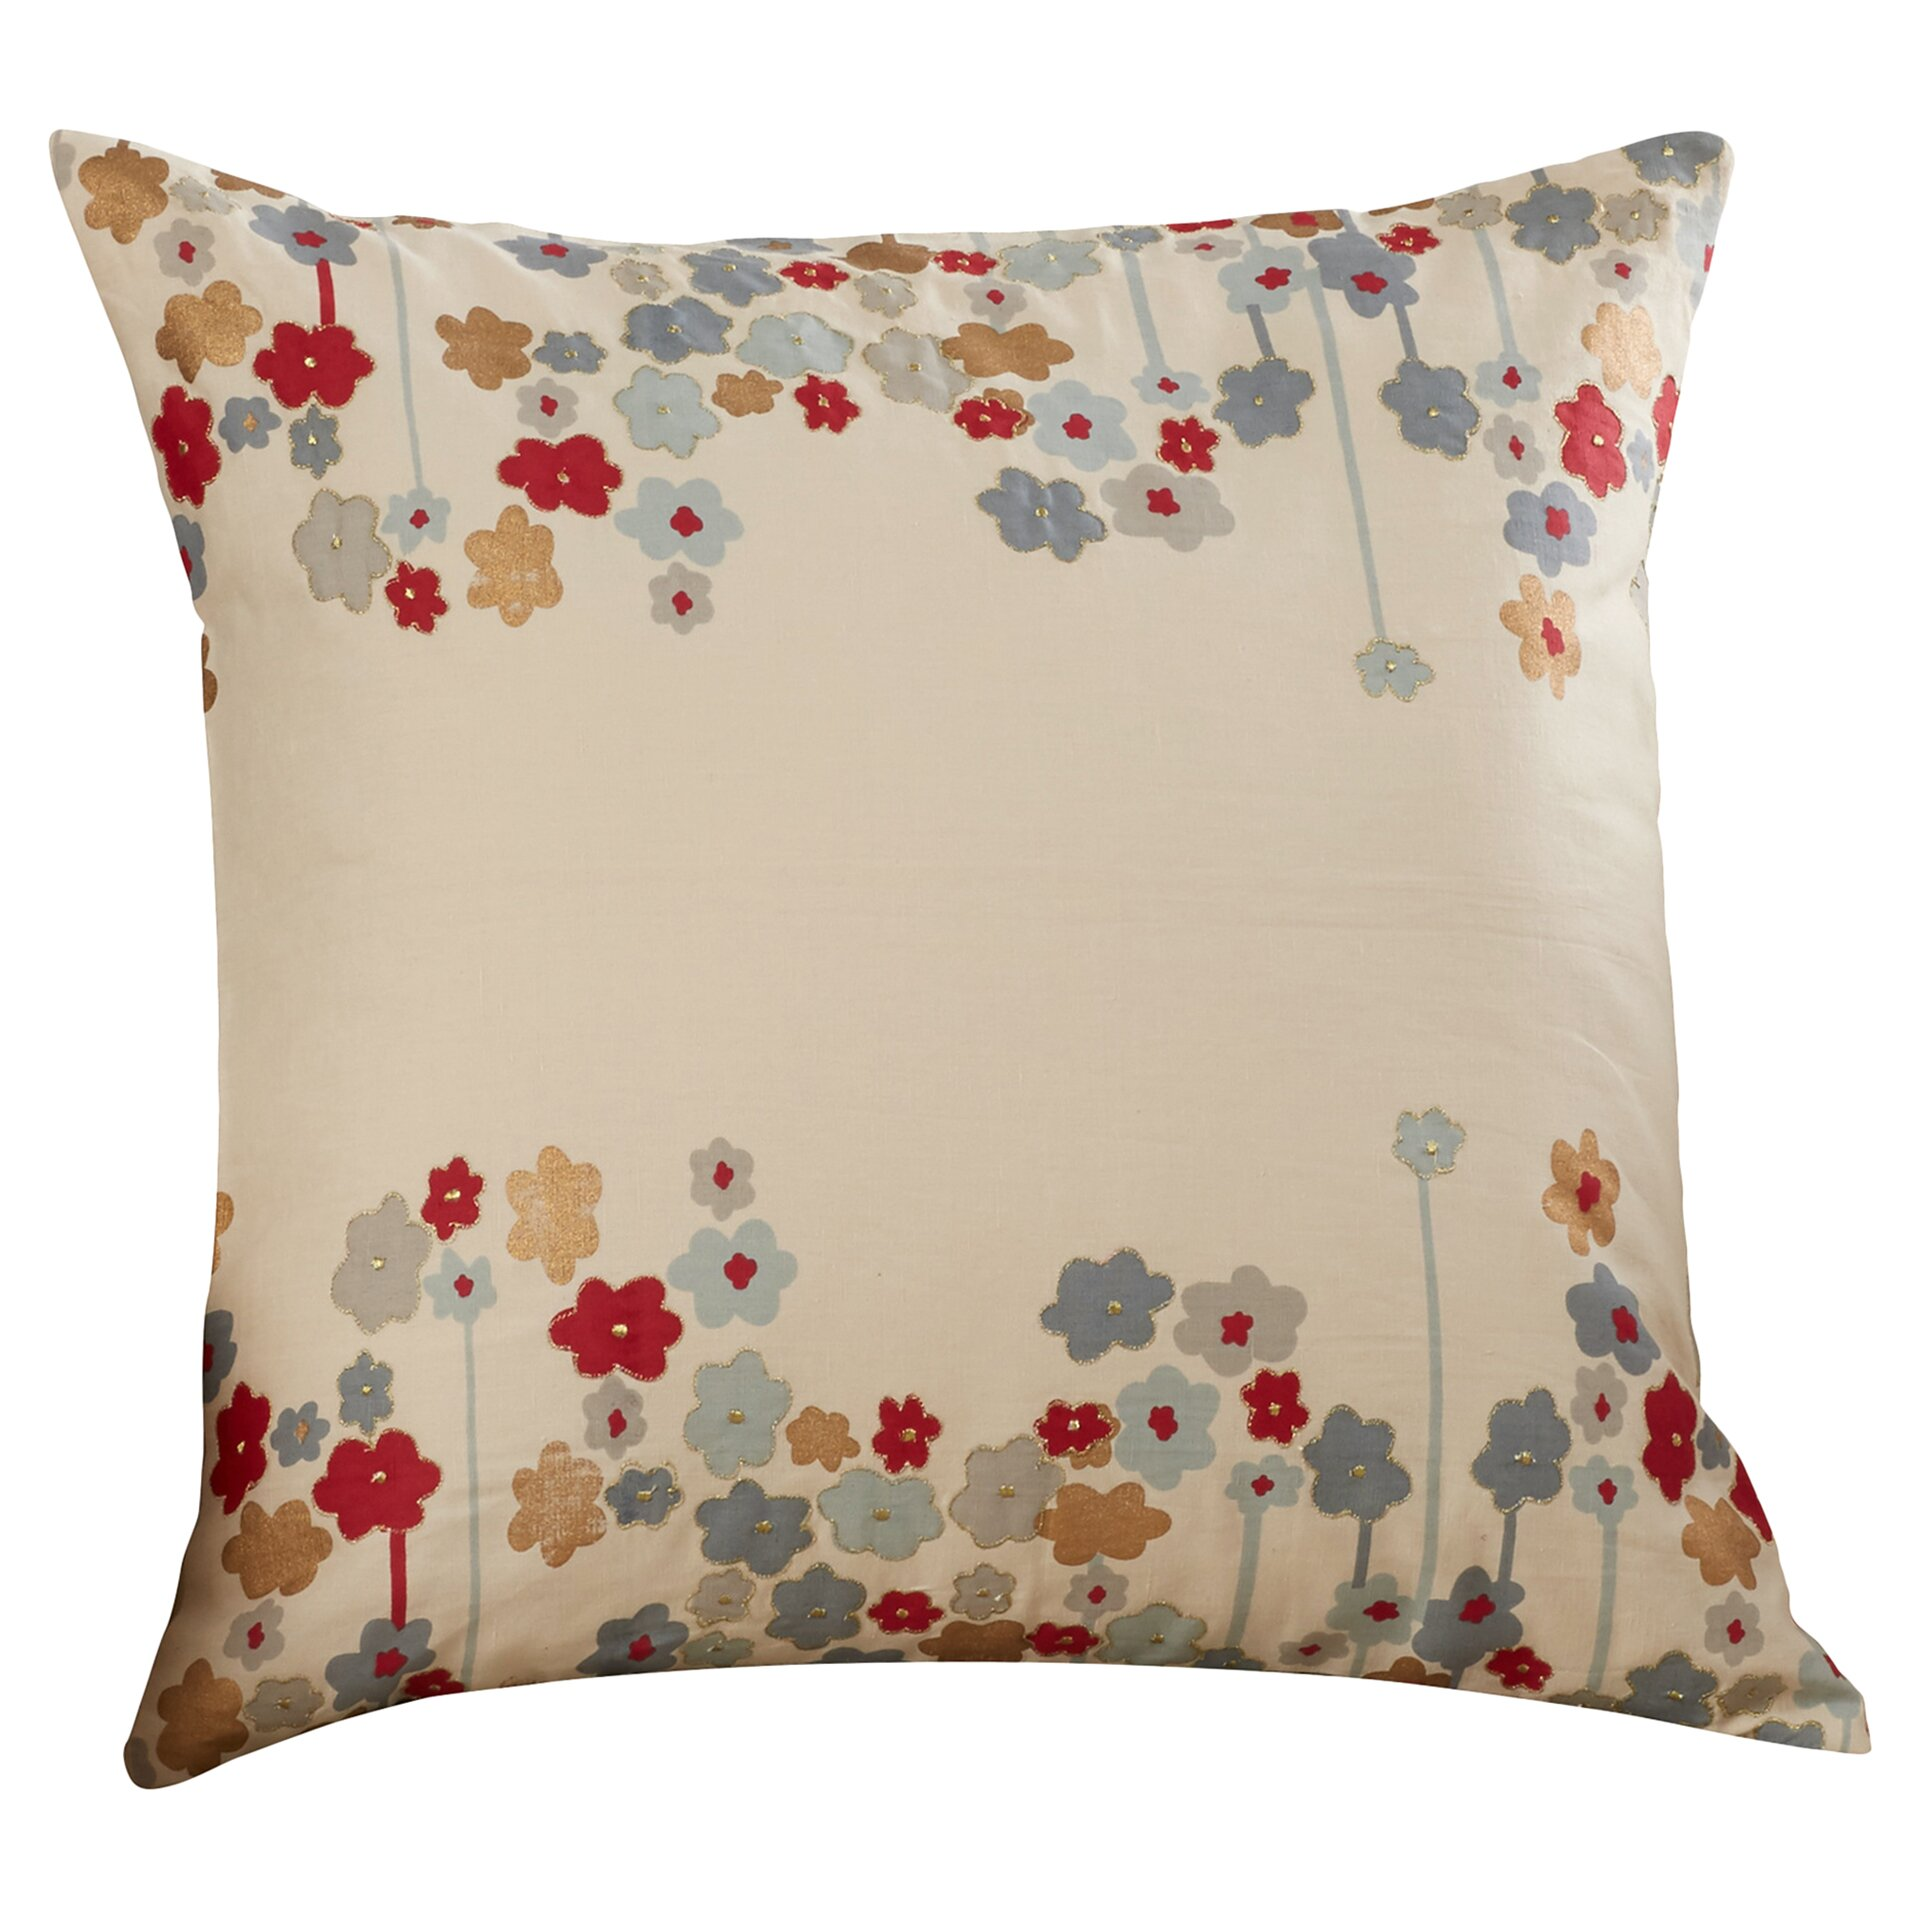 Primrose Road Throw Pillow Wayfair.ca